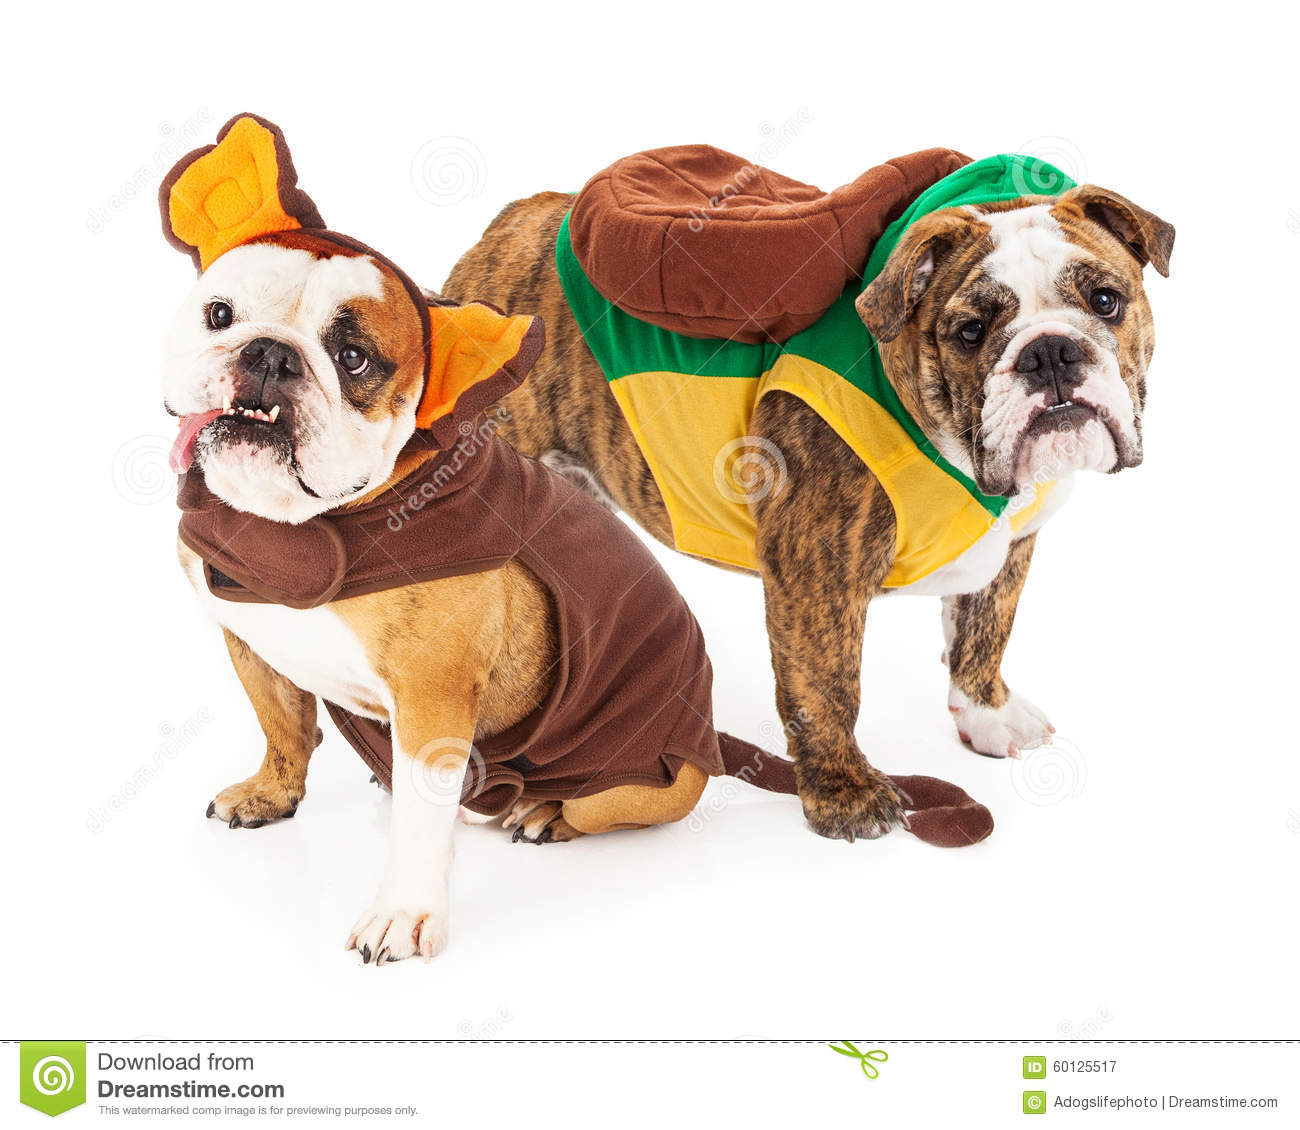 Funny Bulldogs In Halloween Costumes Stock Photo - Image: 60125517